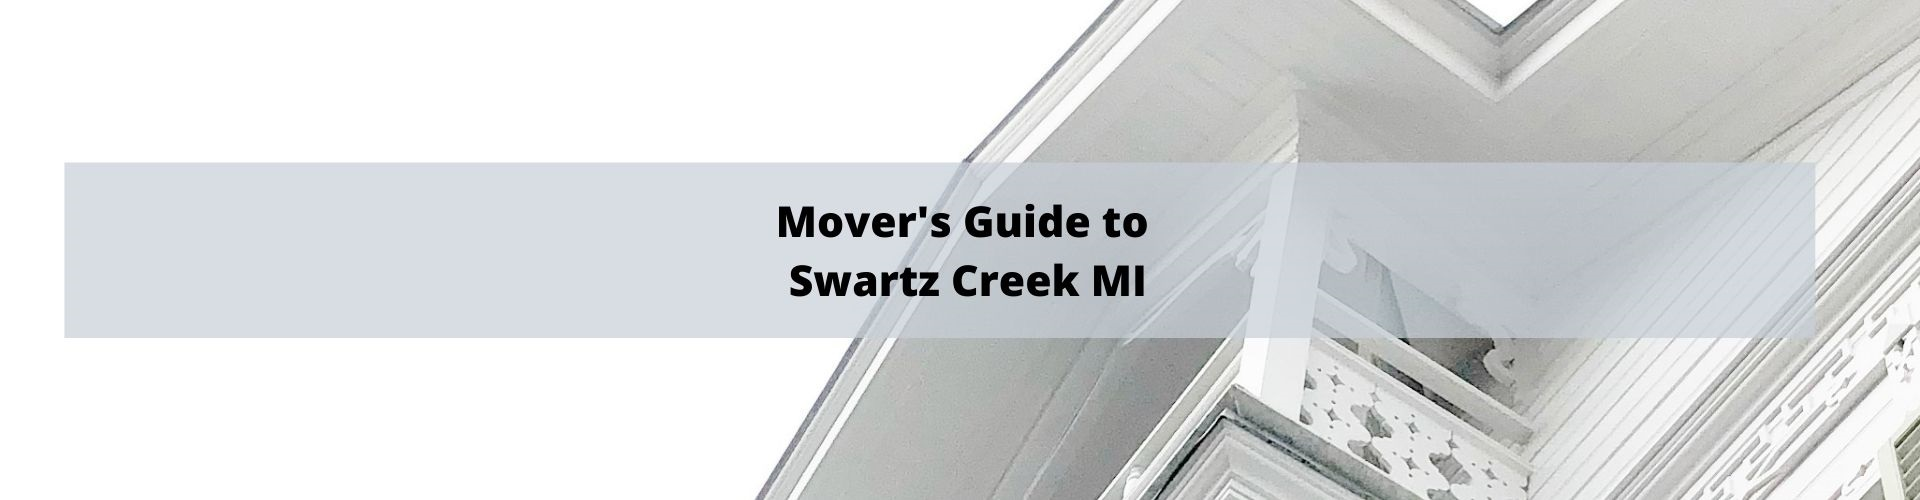 Movers Guide Swartz Creek MI